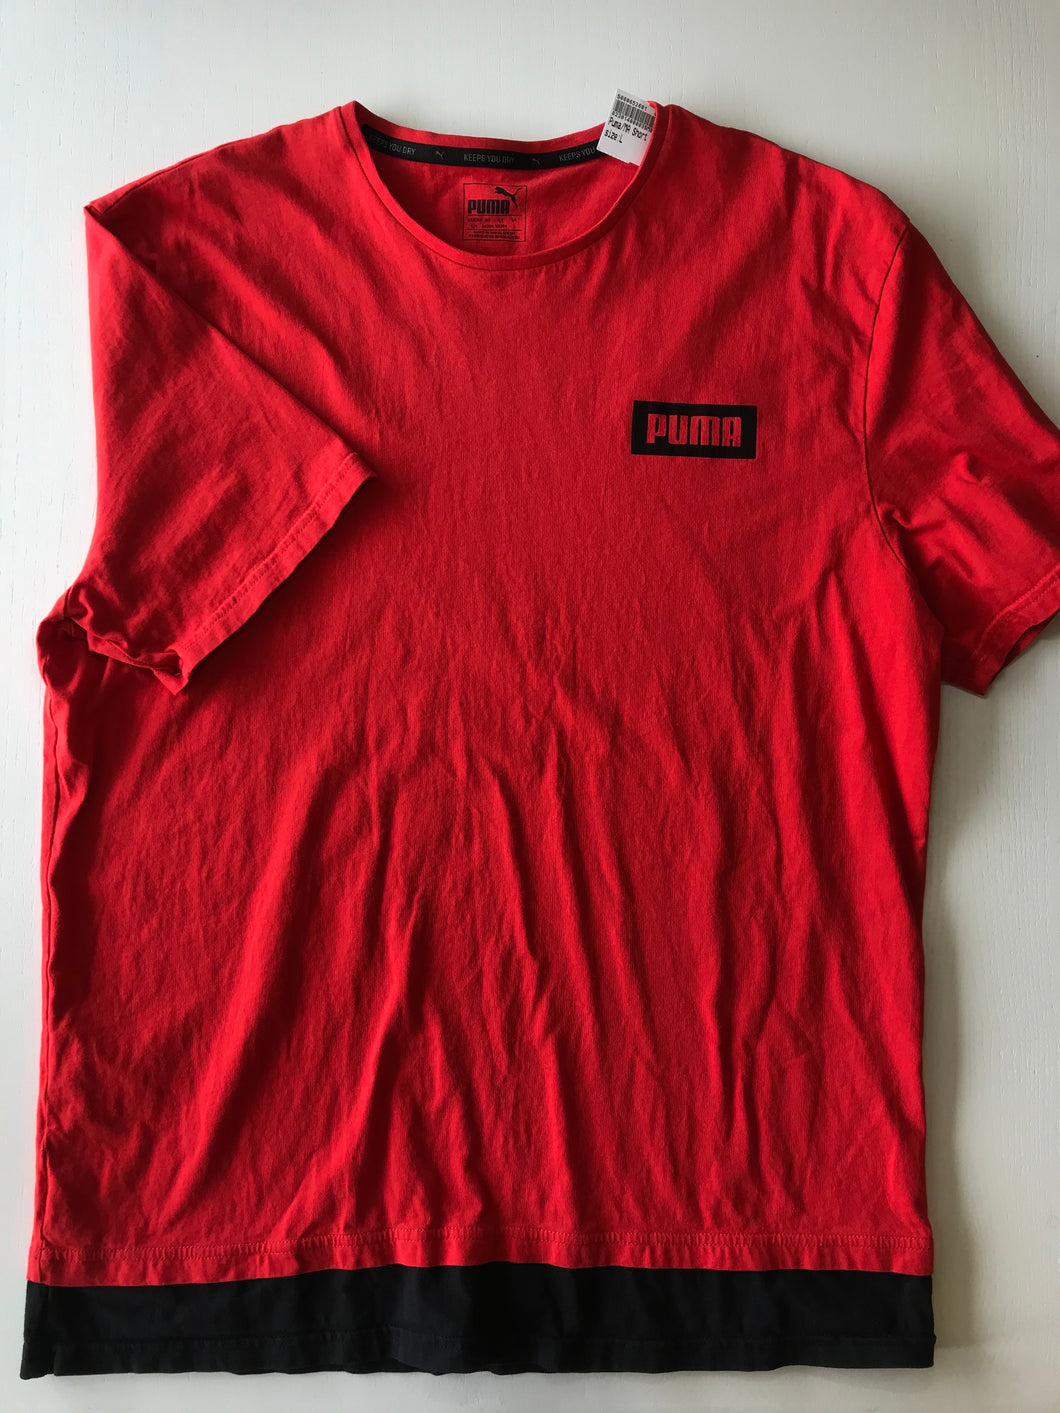 Gently Used Guys Puma Top Size L